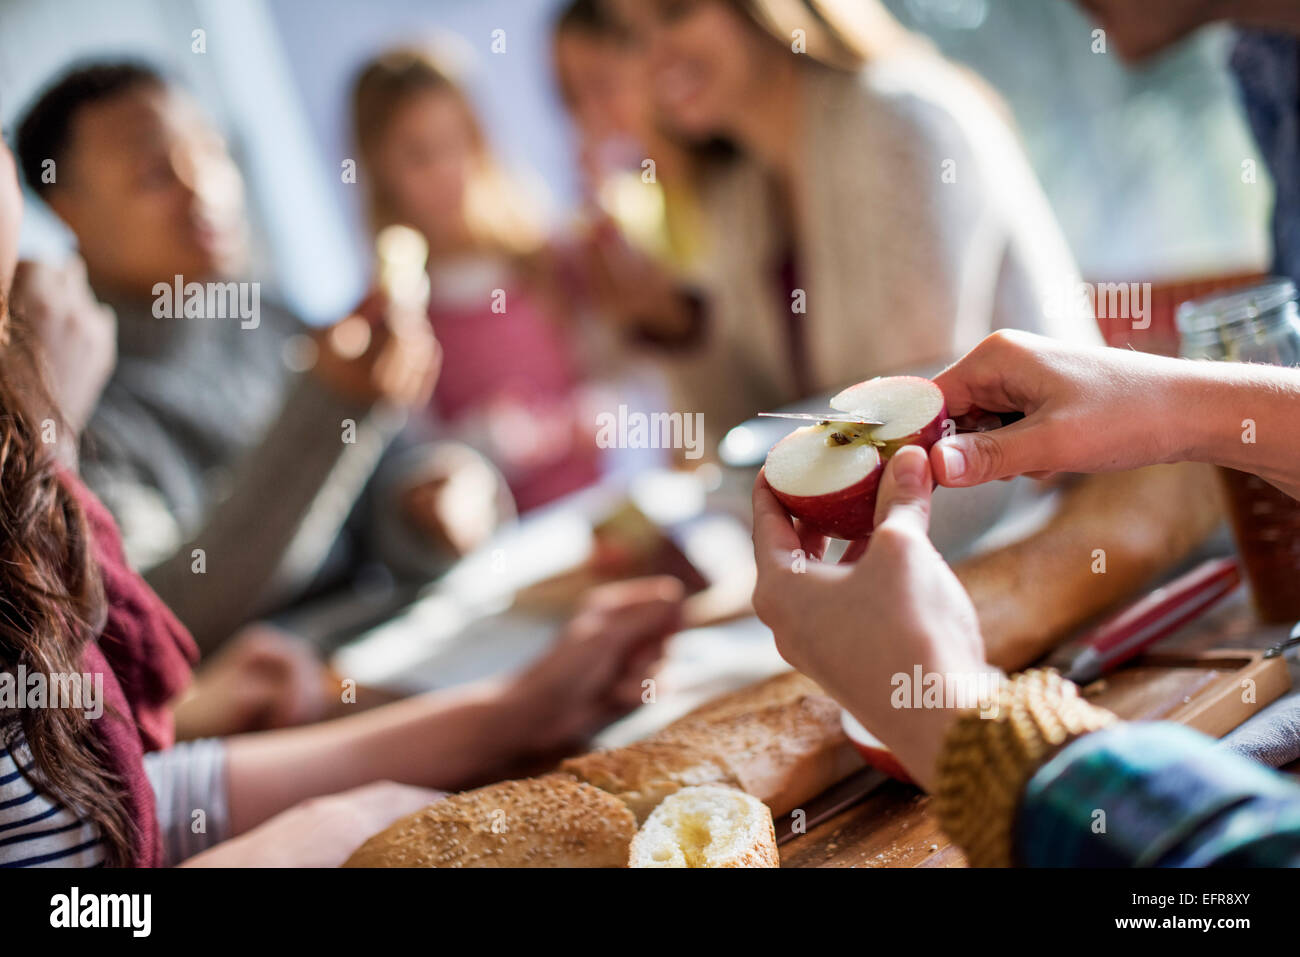 A group of people sitting at a table, eating and chatting. A woman slicing an apple. - Stock Image